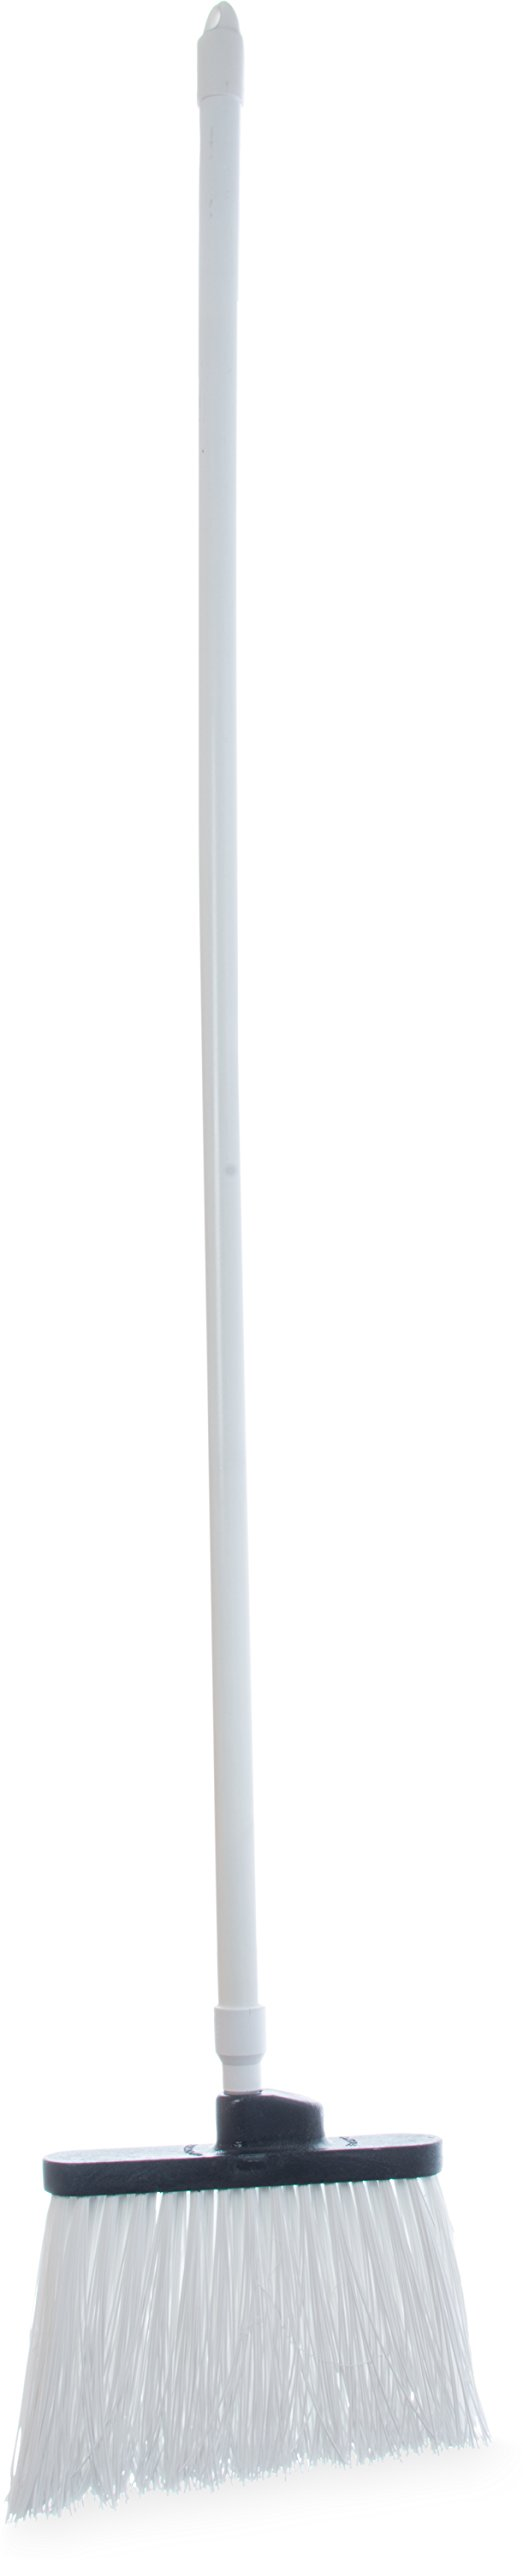 Carlisle 4108302 Sparta Duo-Sweep Unflagged Angle Broom with Fiberglass Handle, 54'' Length, White by Carlisle